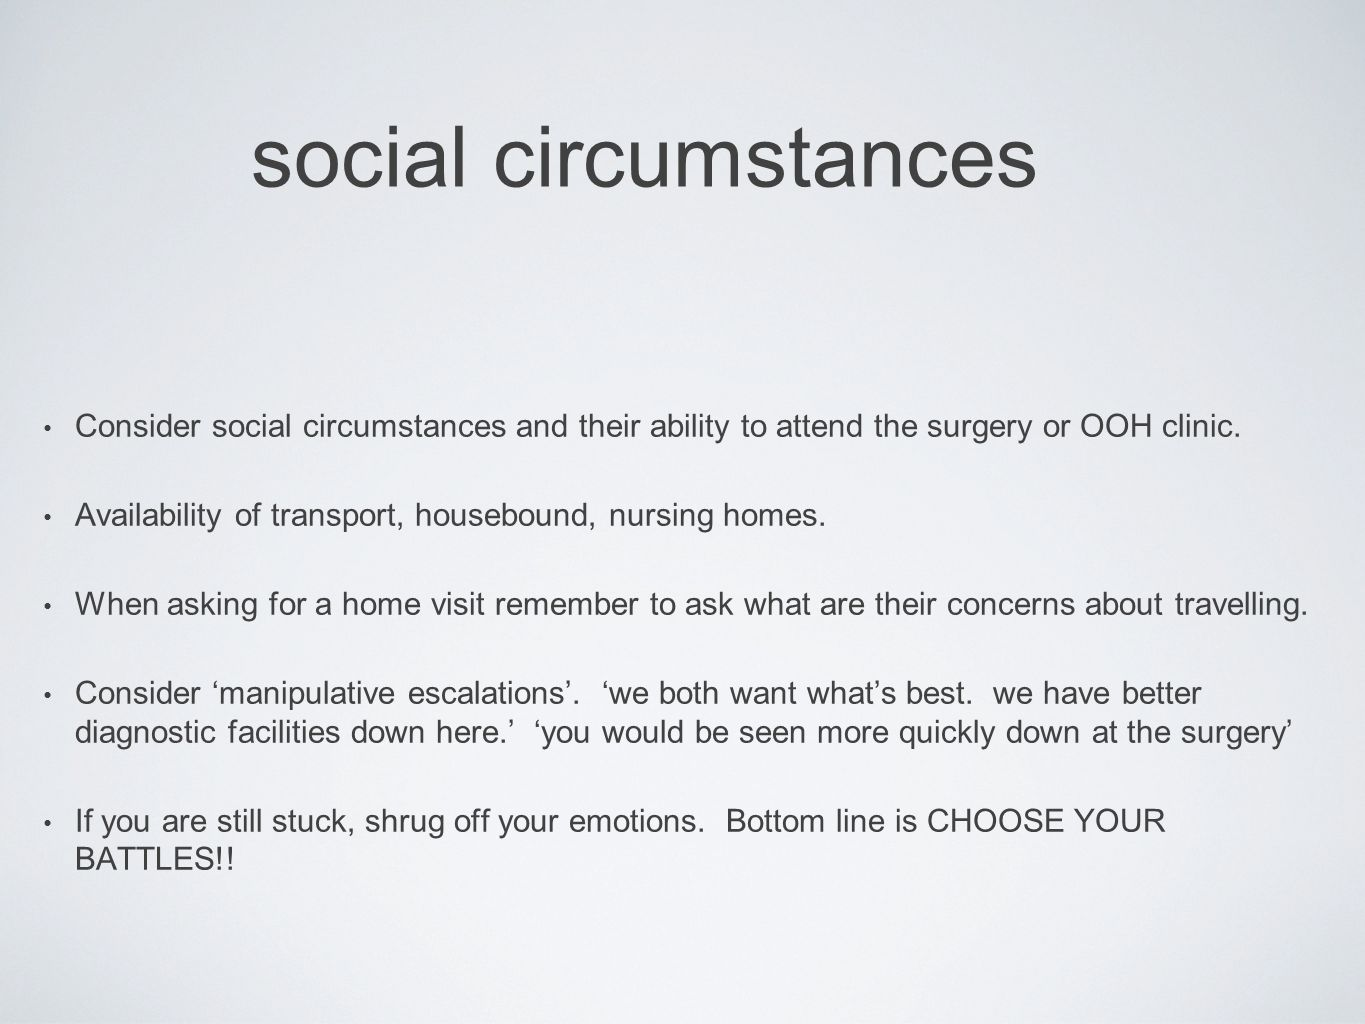 social circumstances Consider social circumstances and their ability to attend the surgery or OOH clinic. Availability of transport, housebound, nursi